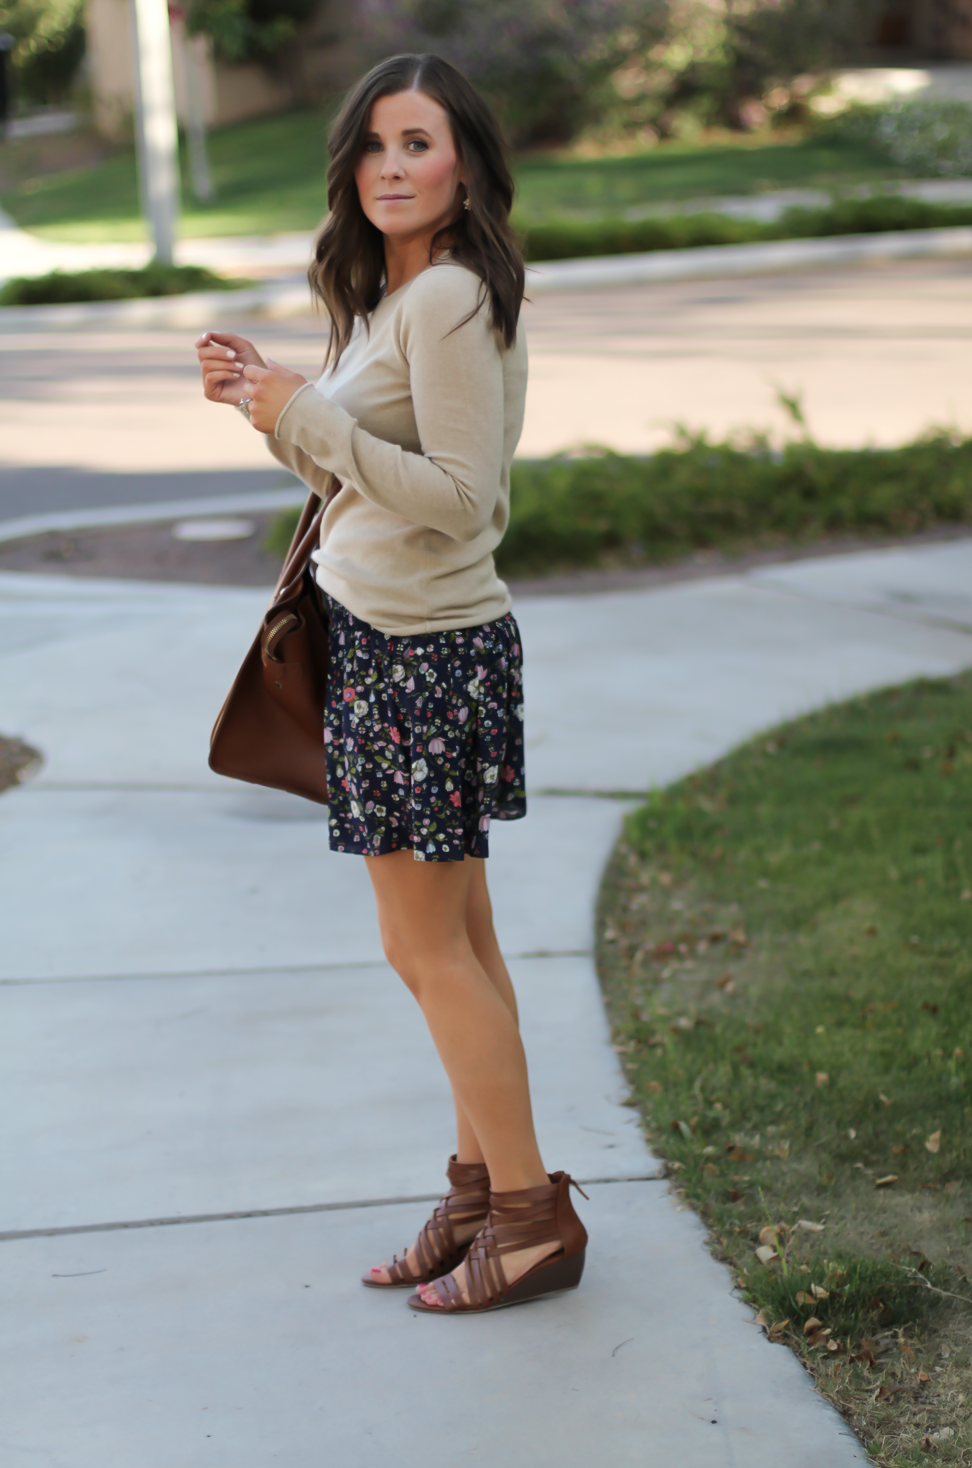 Navy Floral Shorts, Tan Cashmere Sweater, Brown Gladiator Sandals, Brown Leather Tote, Rebecca Taylor, J.Crew, Candies, Celine 6